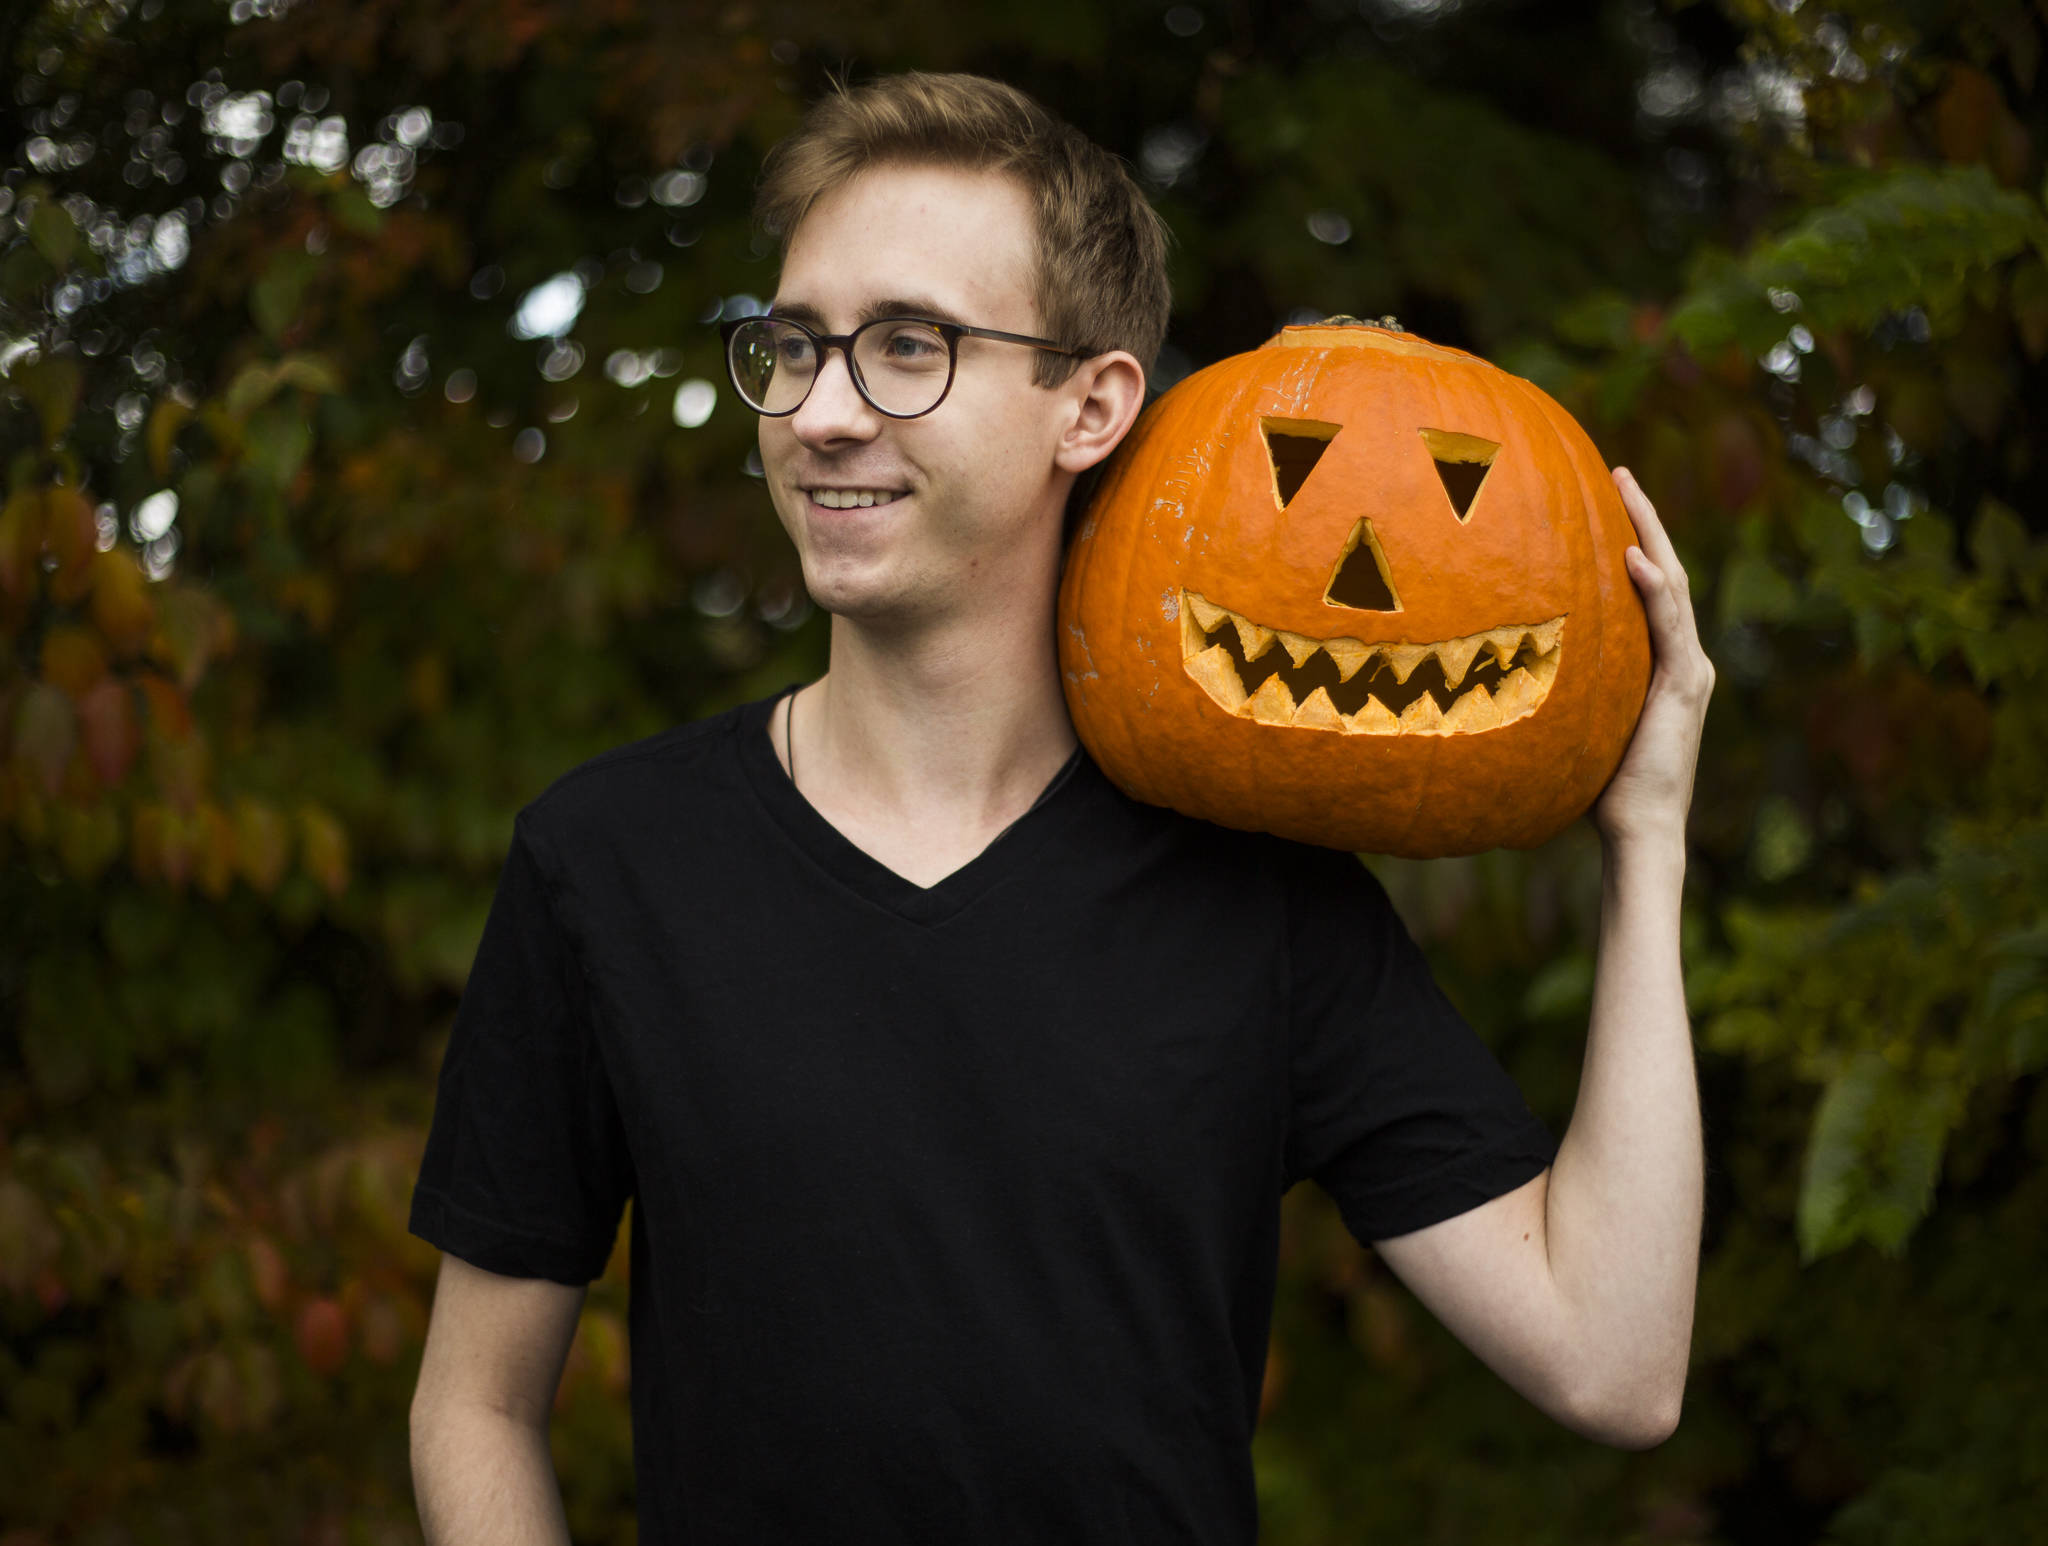 """Brett Kelly, 24, of Lake Stevens, created a """"Pumpkin Man"""" video for TikTok that was picked up by the CBS show """"The Greatest #AtHome Videos."""" (Olivia Vanni / The Herald)"""